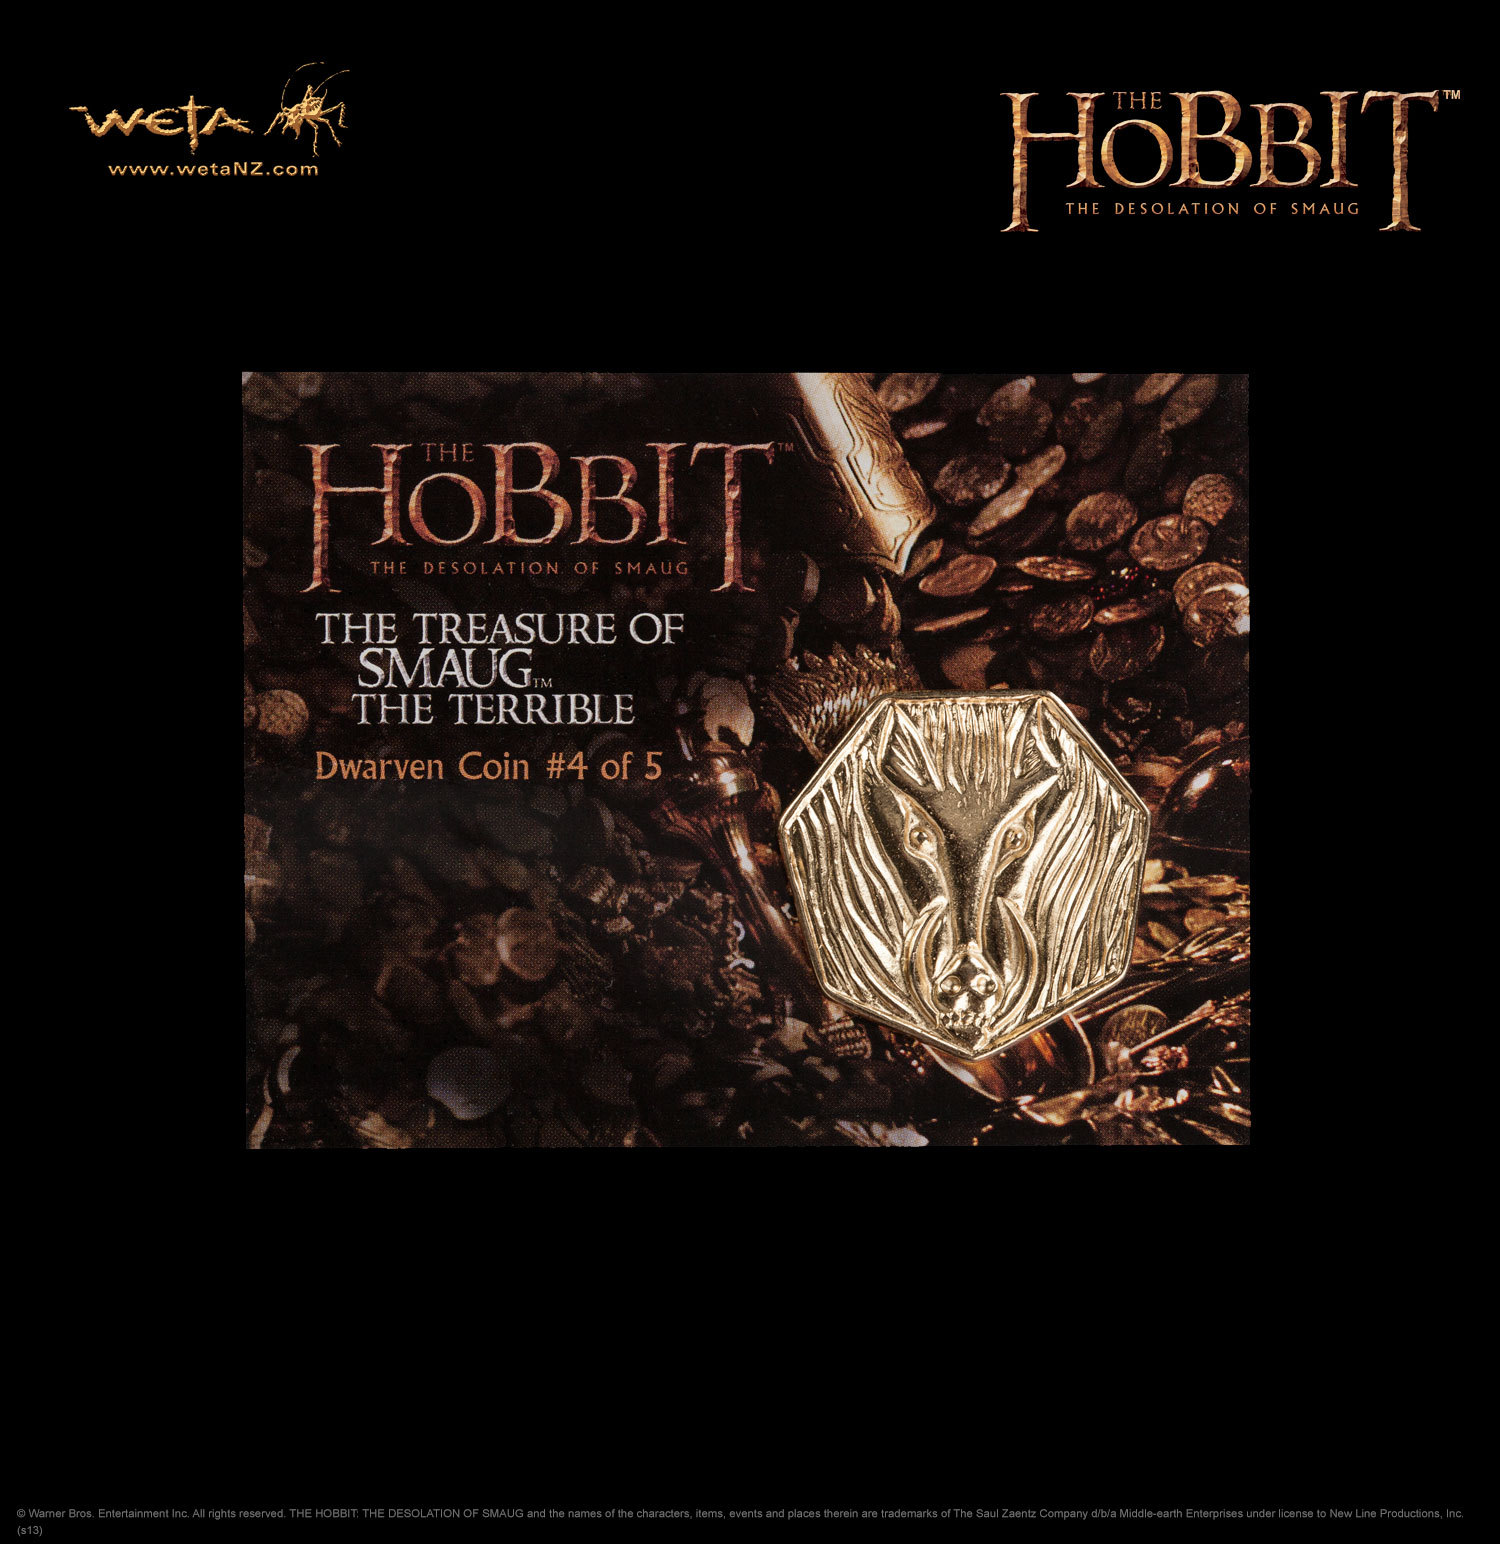 The Hobbit: Desolation of Smaug Treasure Coin #4 - by Weta image